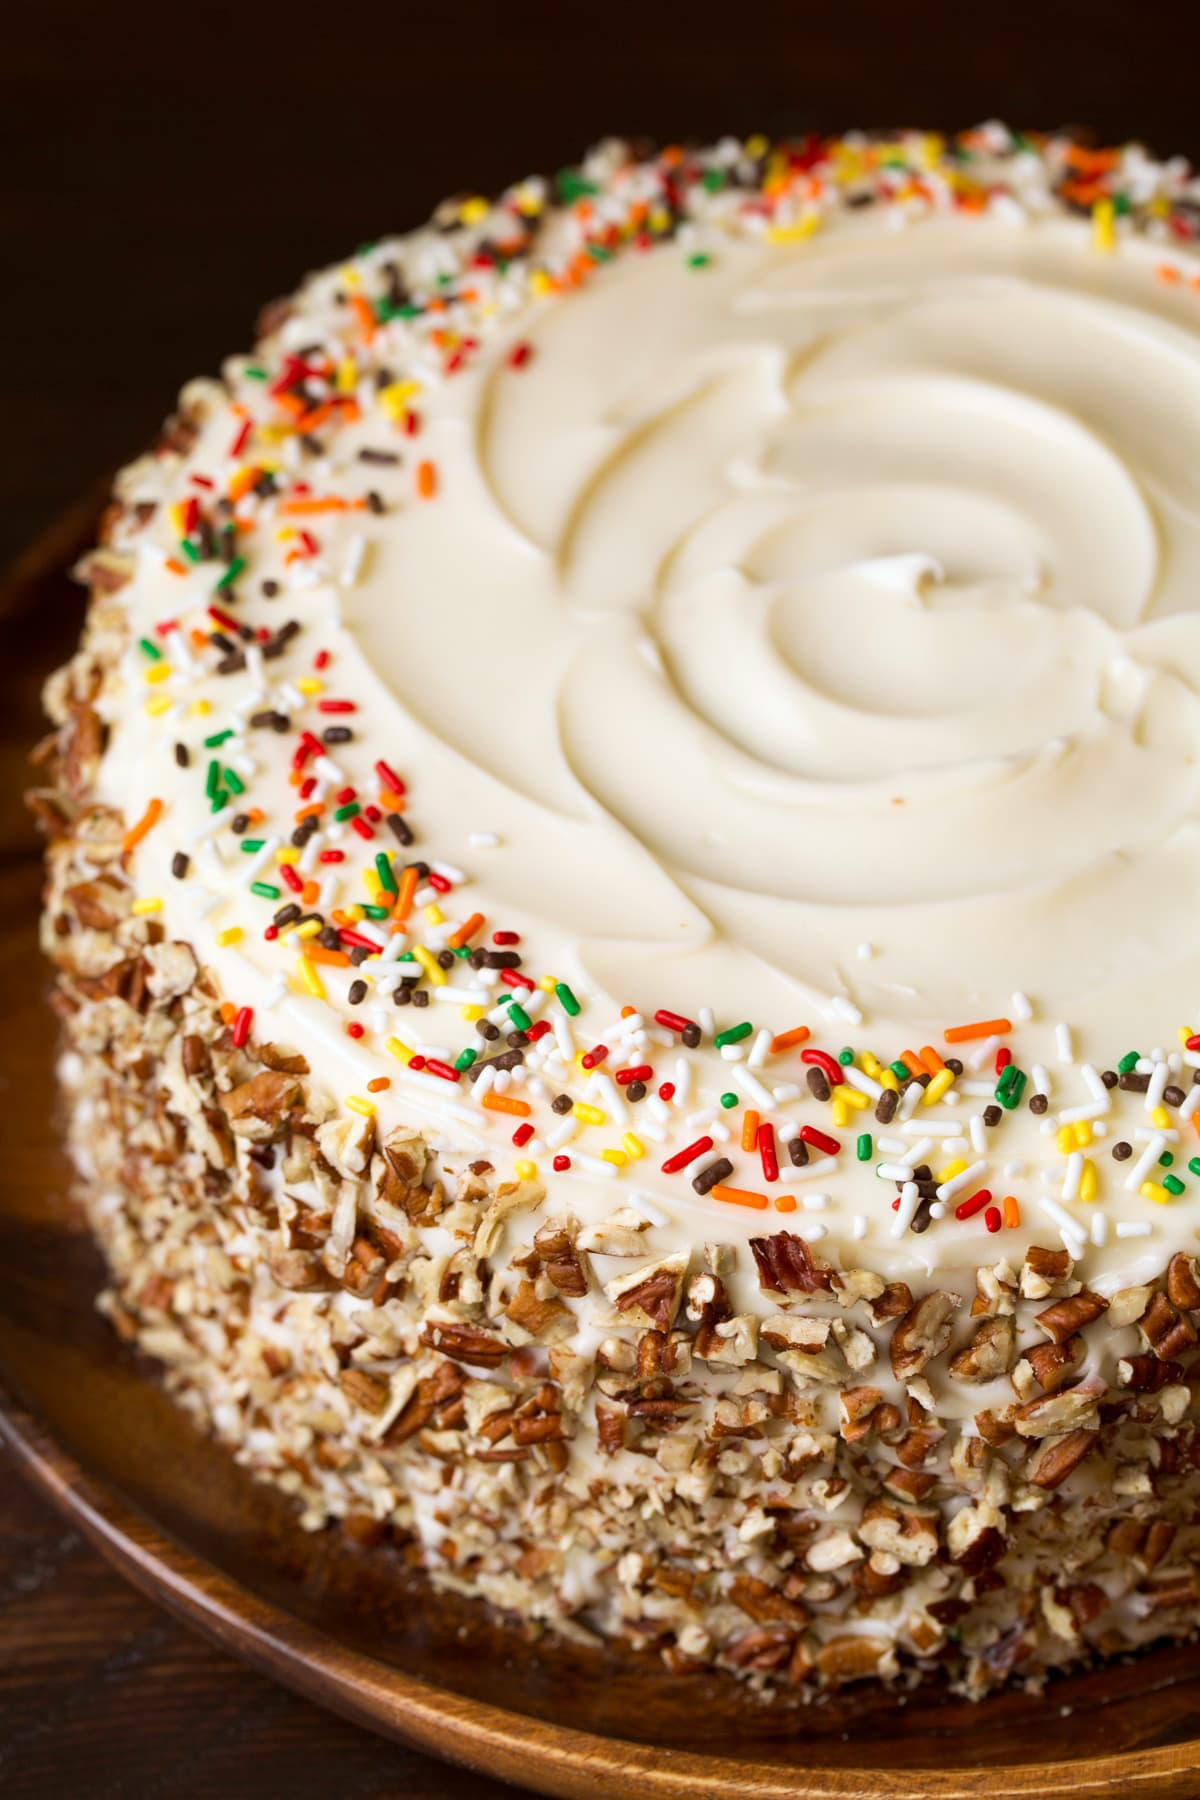 A whole round spice cake without any slices cut. It's covered with a cream cheese frosting, chopped pecans around the edges and fall sprinkles around the top.